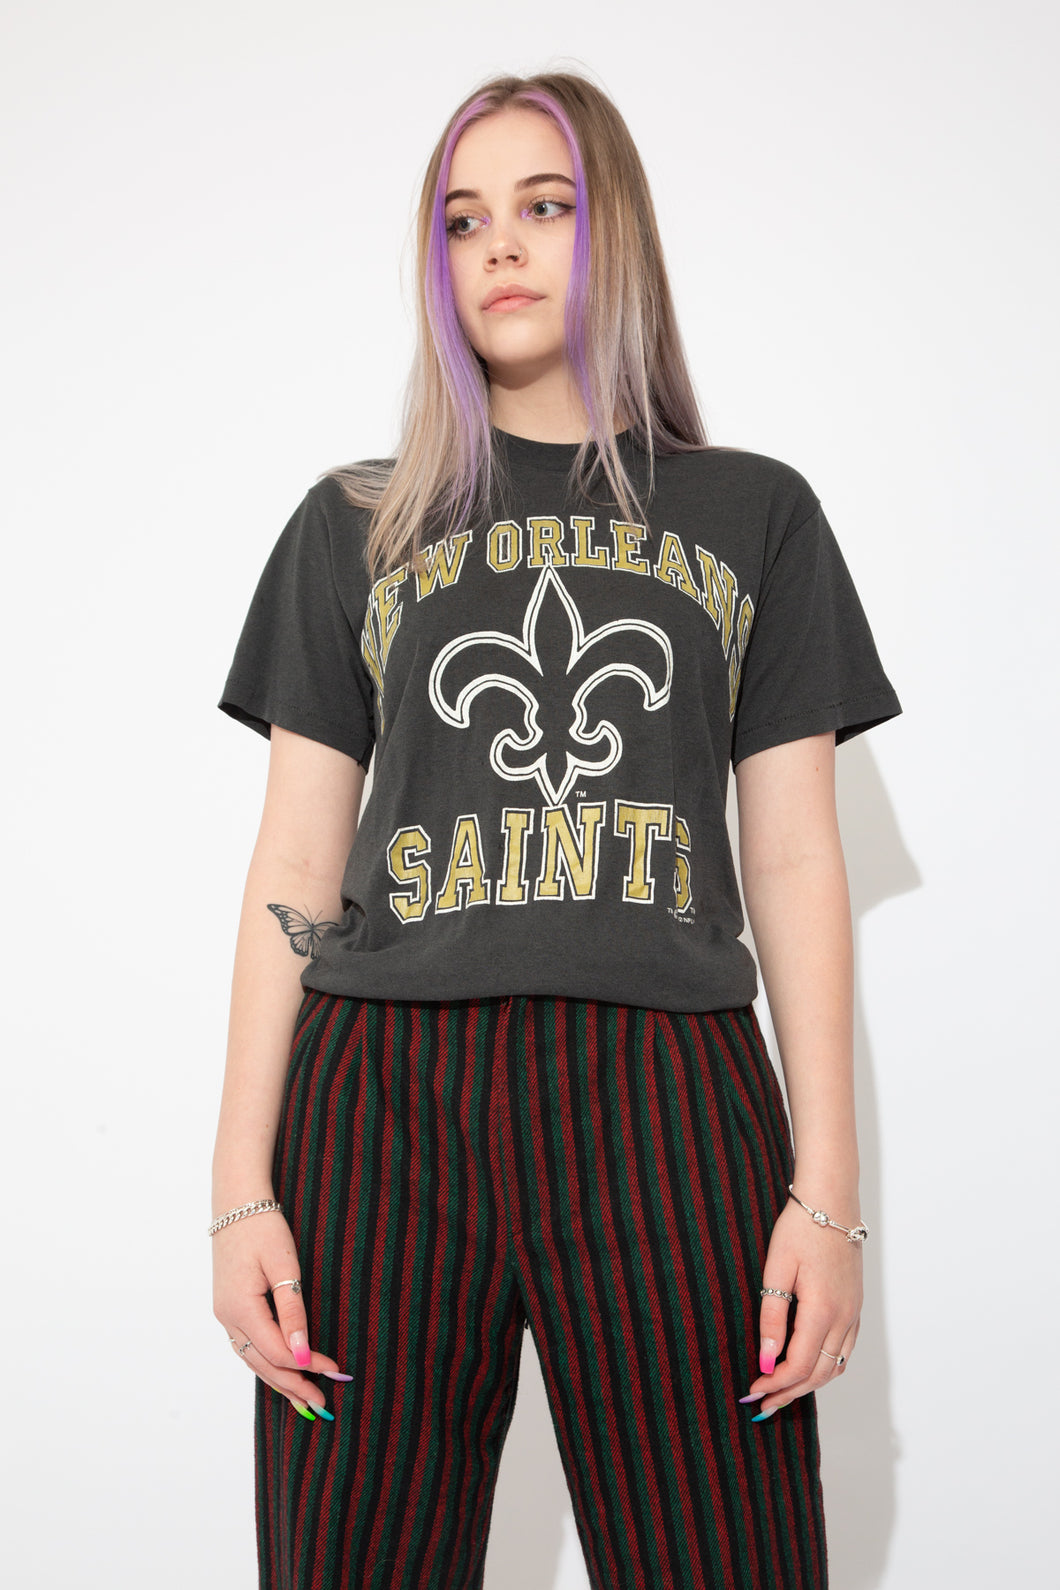 New Orleans Saints Tee